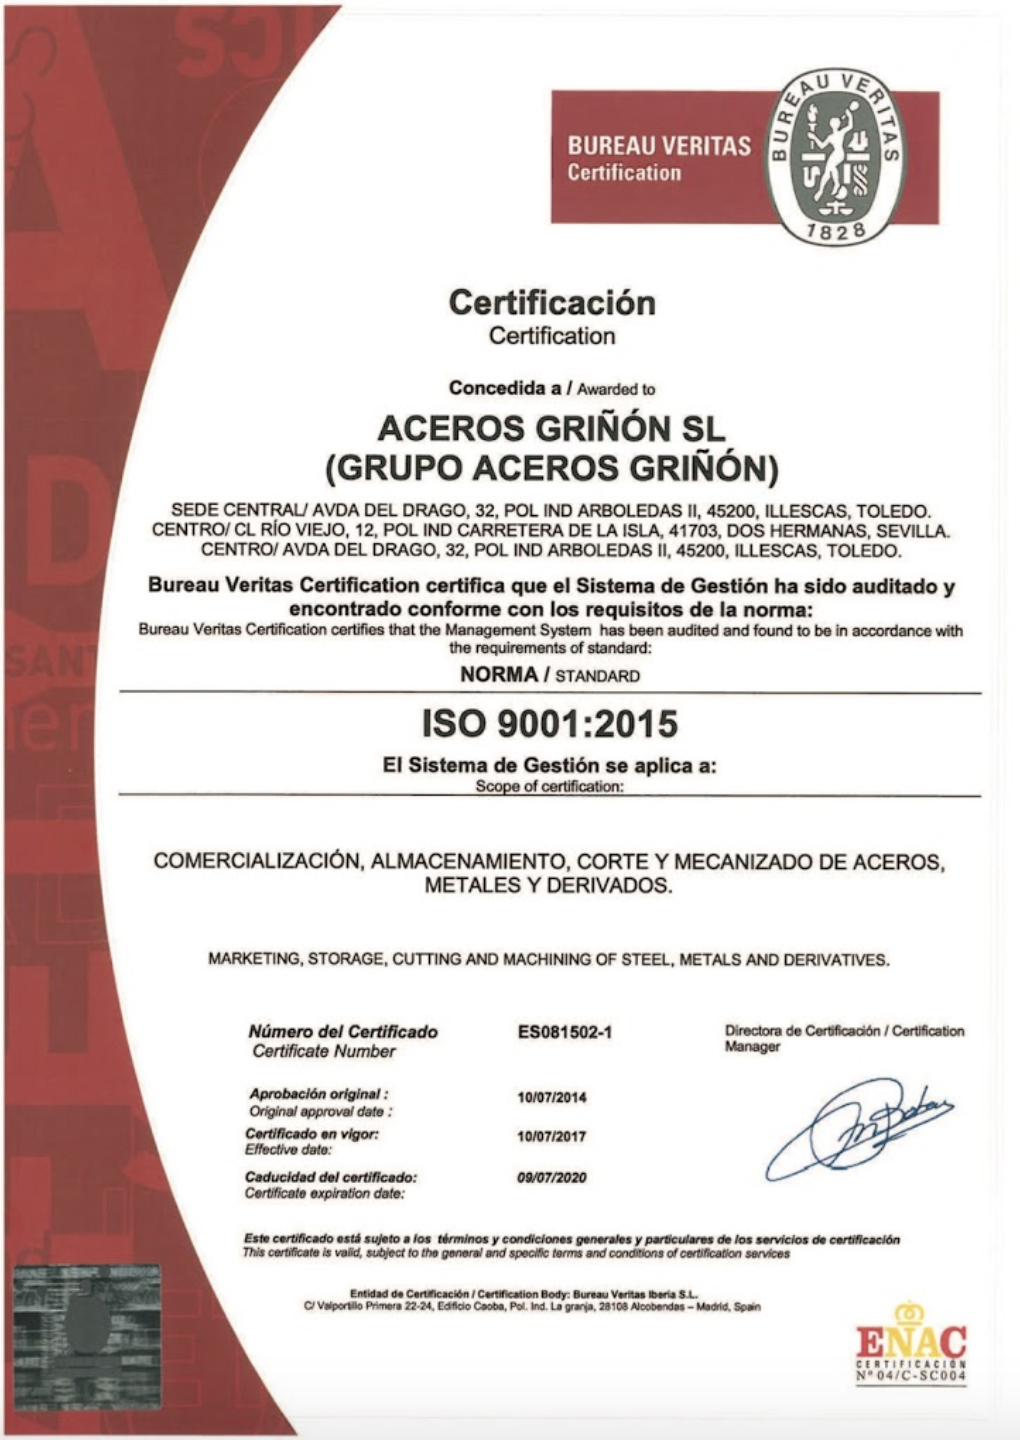 ISO 9001:2015 BUREAU VERITAS Certification